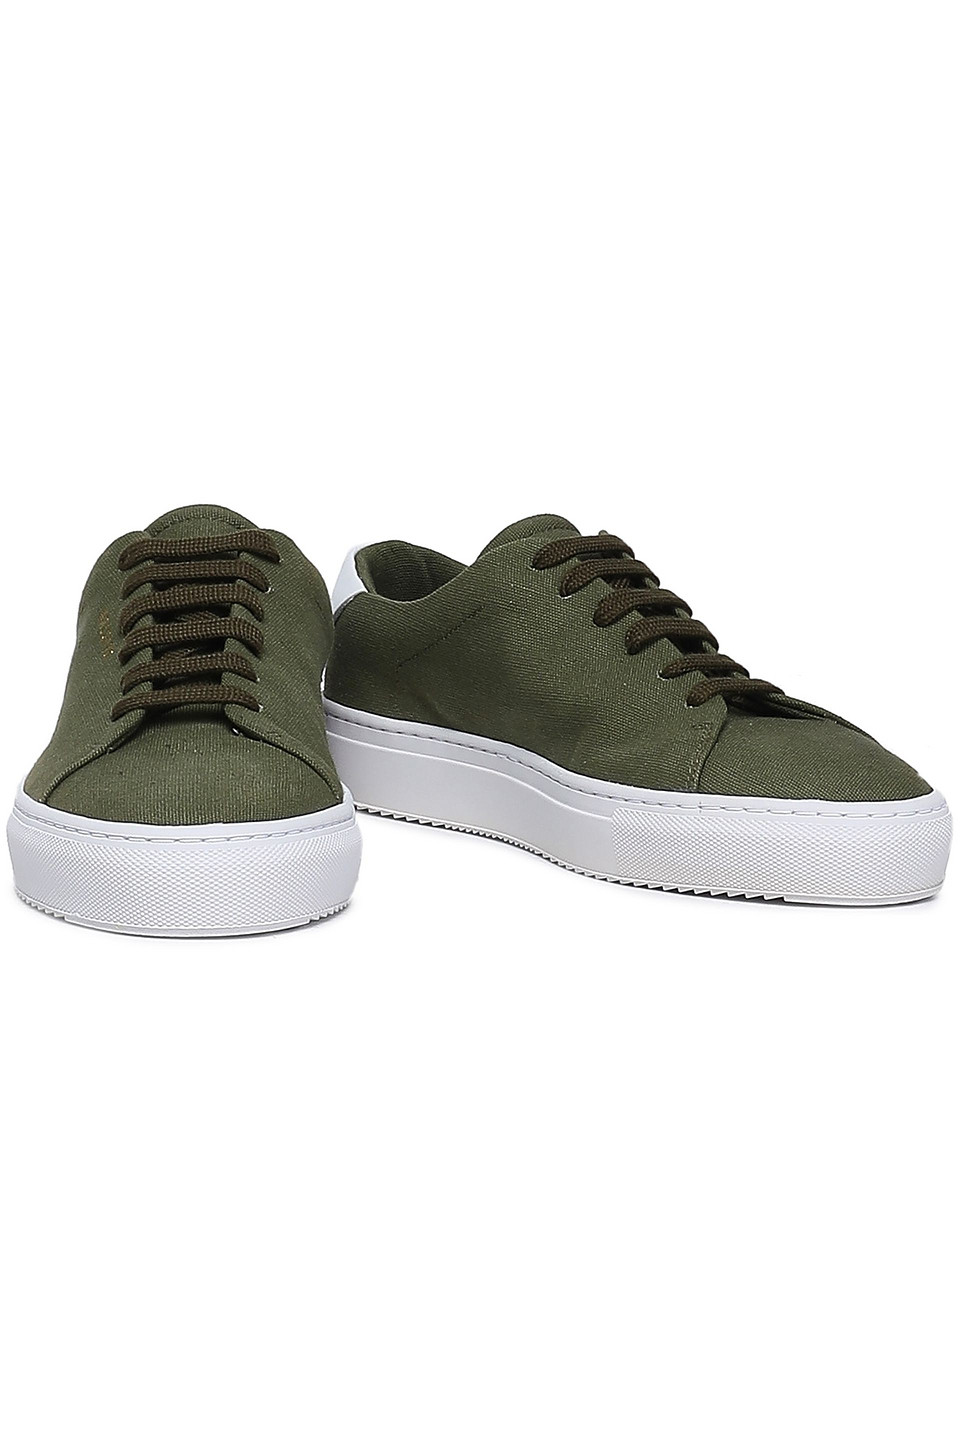 Axel Arigato | Axel Arigato Woman Leather-trimmed Canvas Sneakers Army Green | Clouty